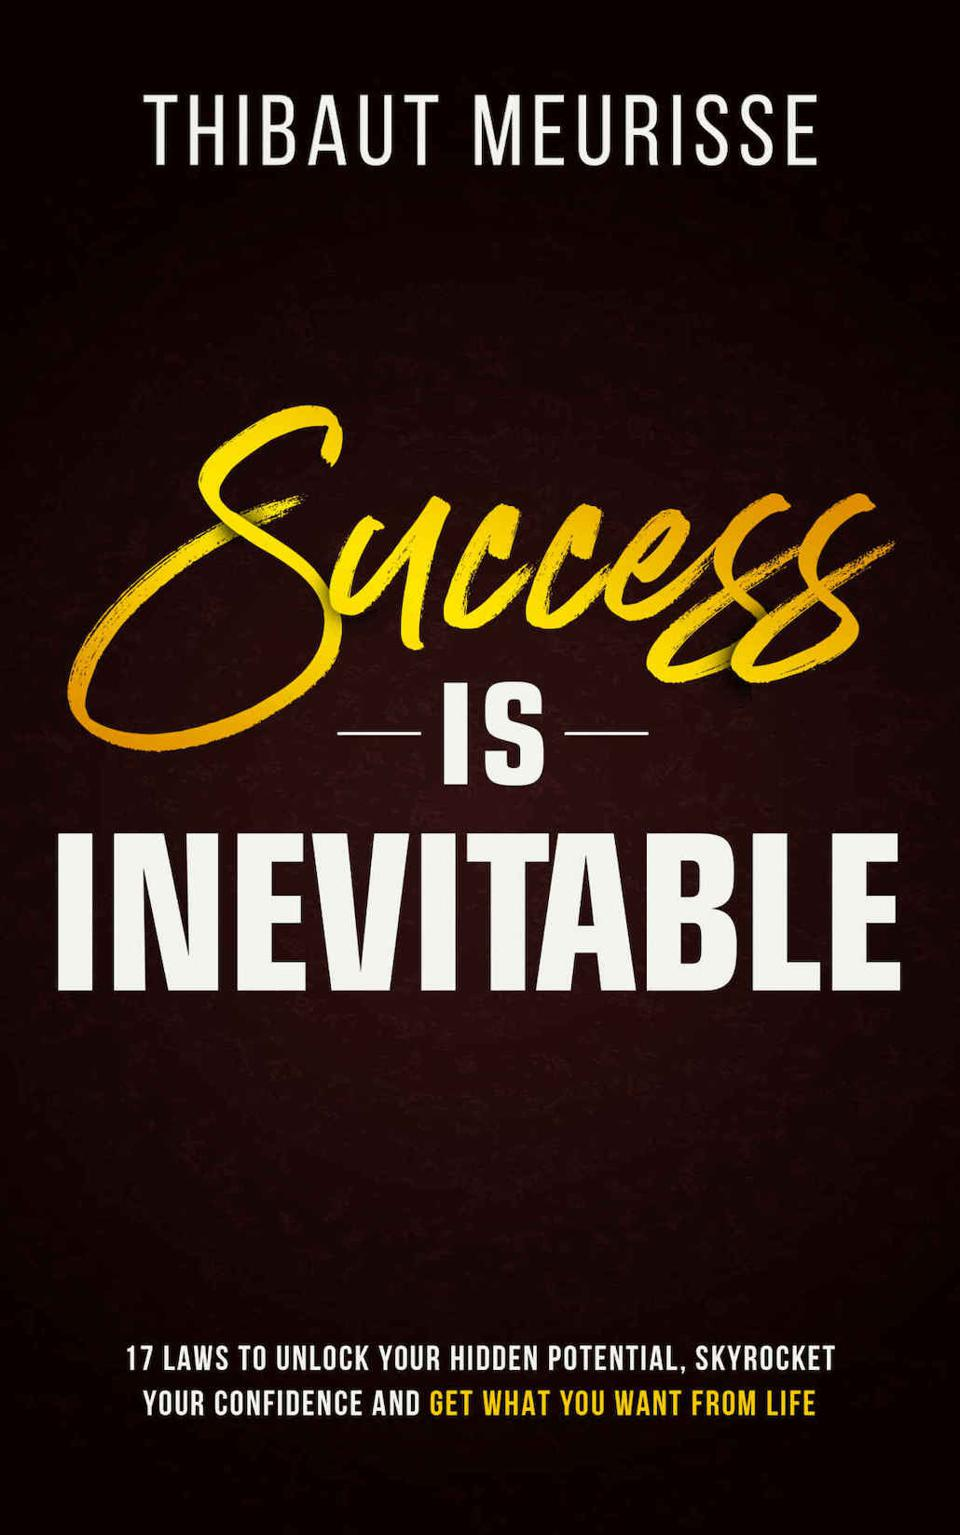 Success Is Inevitable: 17 Laws to Unlock Your Hidden Potential, Skyrocket Your Confidence and Get What You Want from Life by Thibaut Meurisse